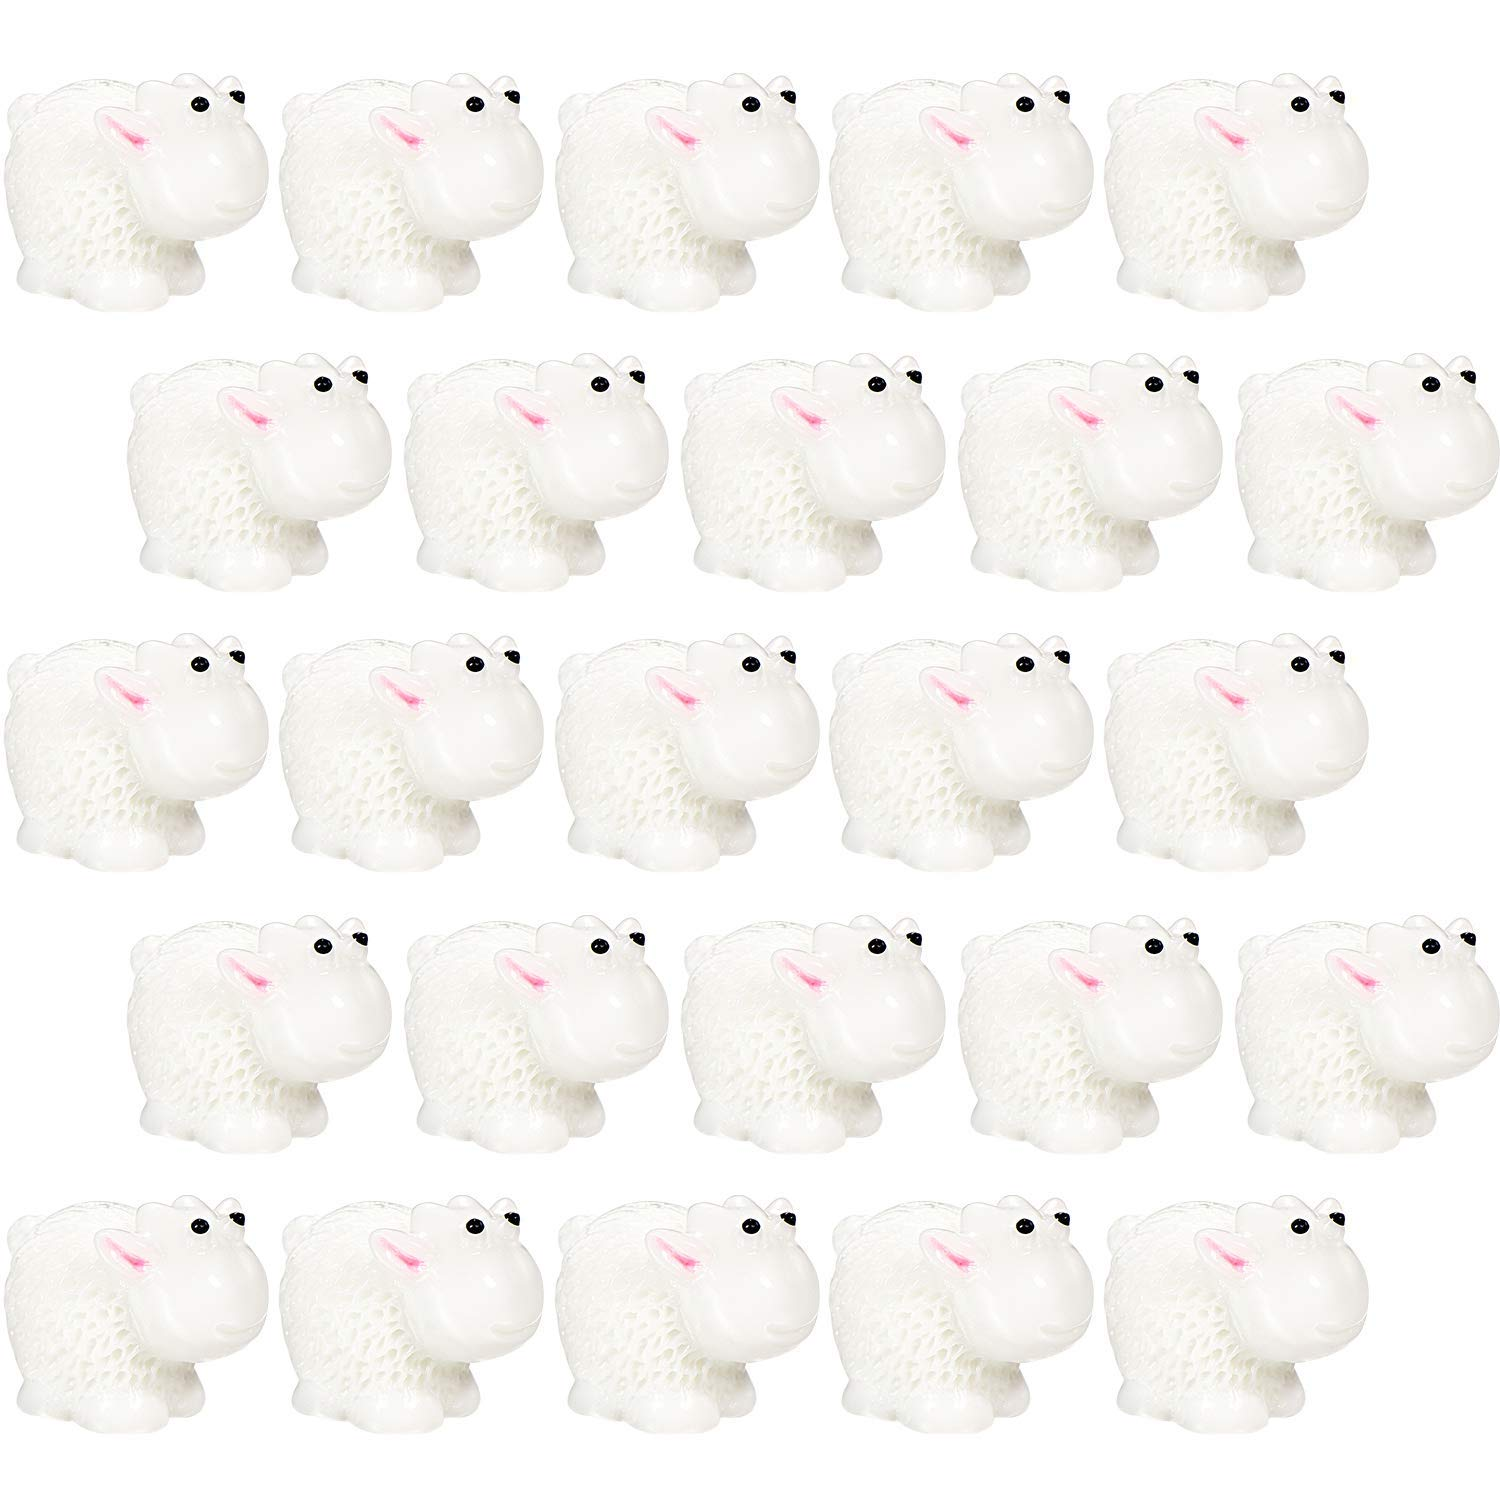 TecUnite 40 Pieces Sheep Slime Charms Crunchy Slime Beads for Ornament Slime DIY Crafts